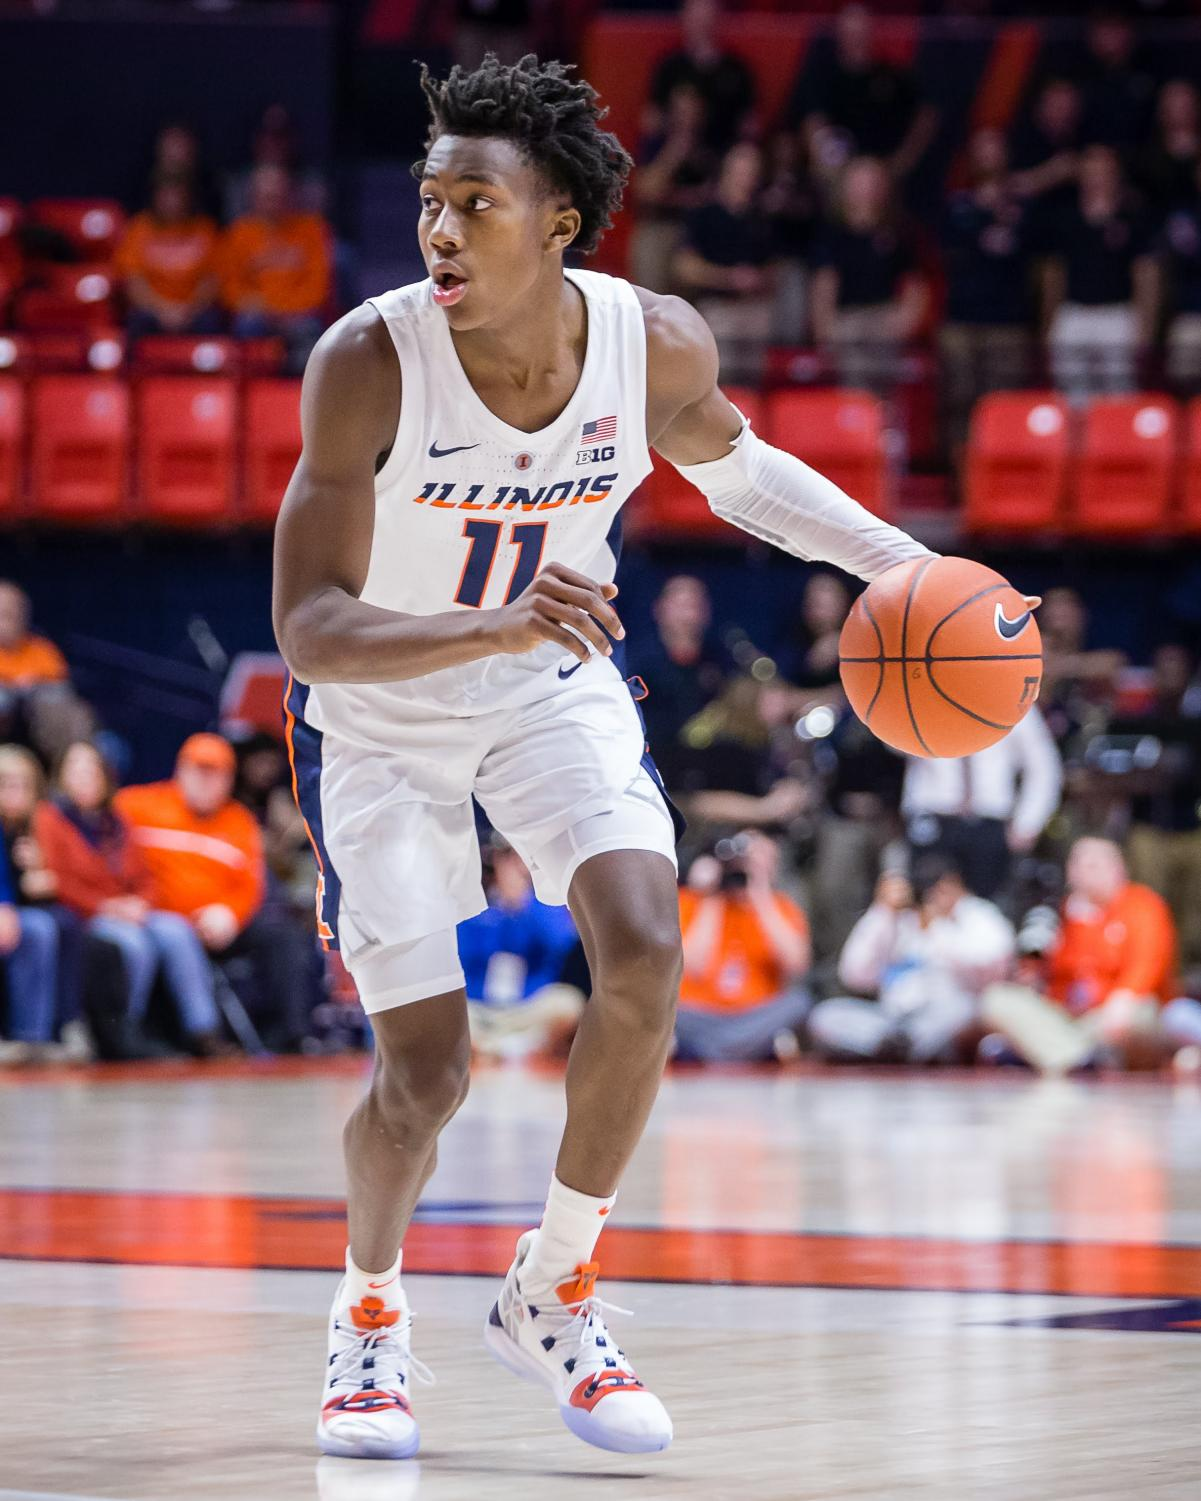 Illinois guard Ayo Dosunmu dribbles the ball during the game against UNLV at State Farm Center on Saturday.